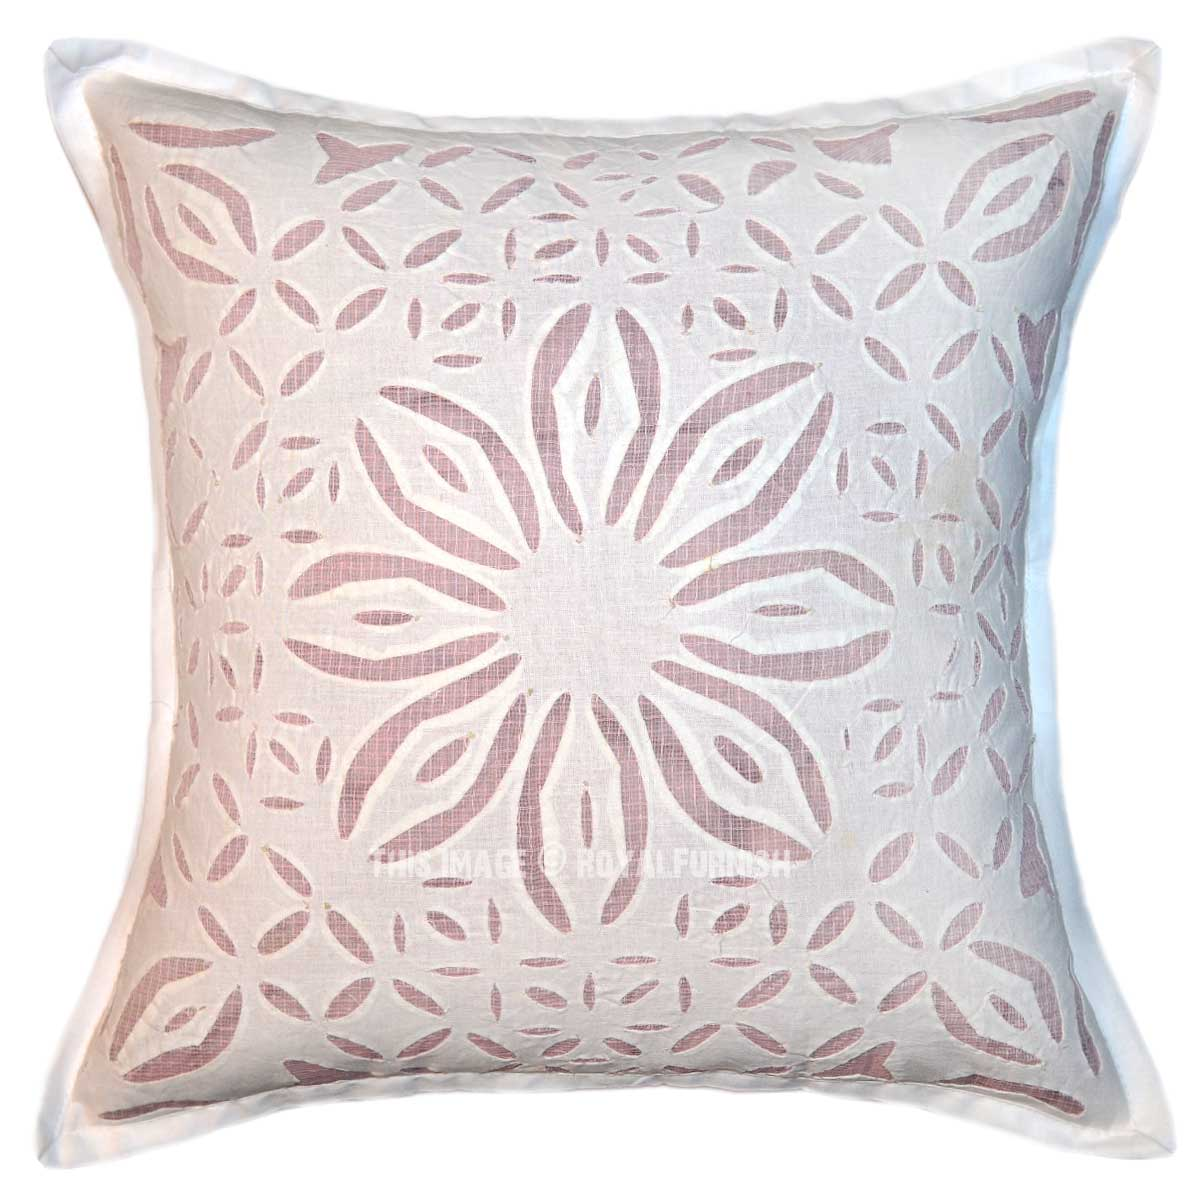 Large Square Decorative Pillow Covers : White Big Flower Hand Cutwork Designer Cotton Square Pillow Cover 16X16 - RoyalFurnish.com